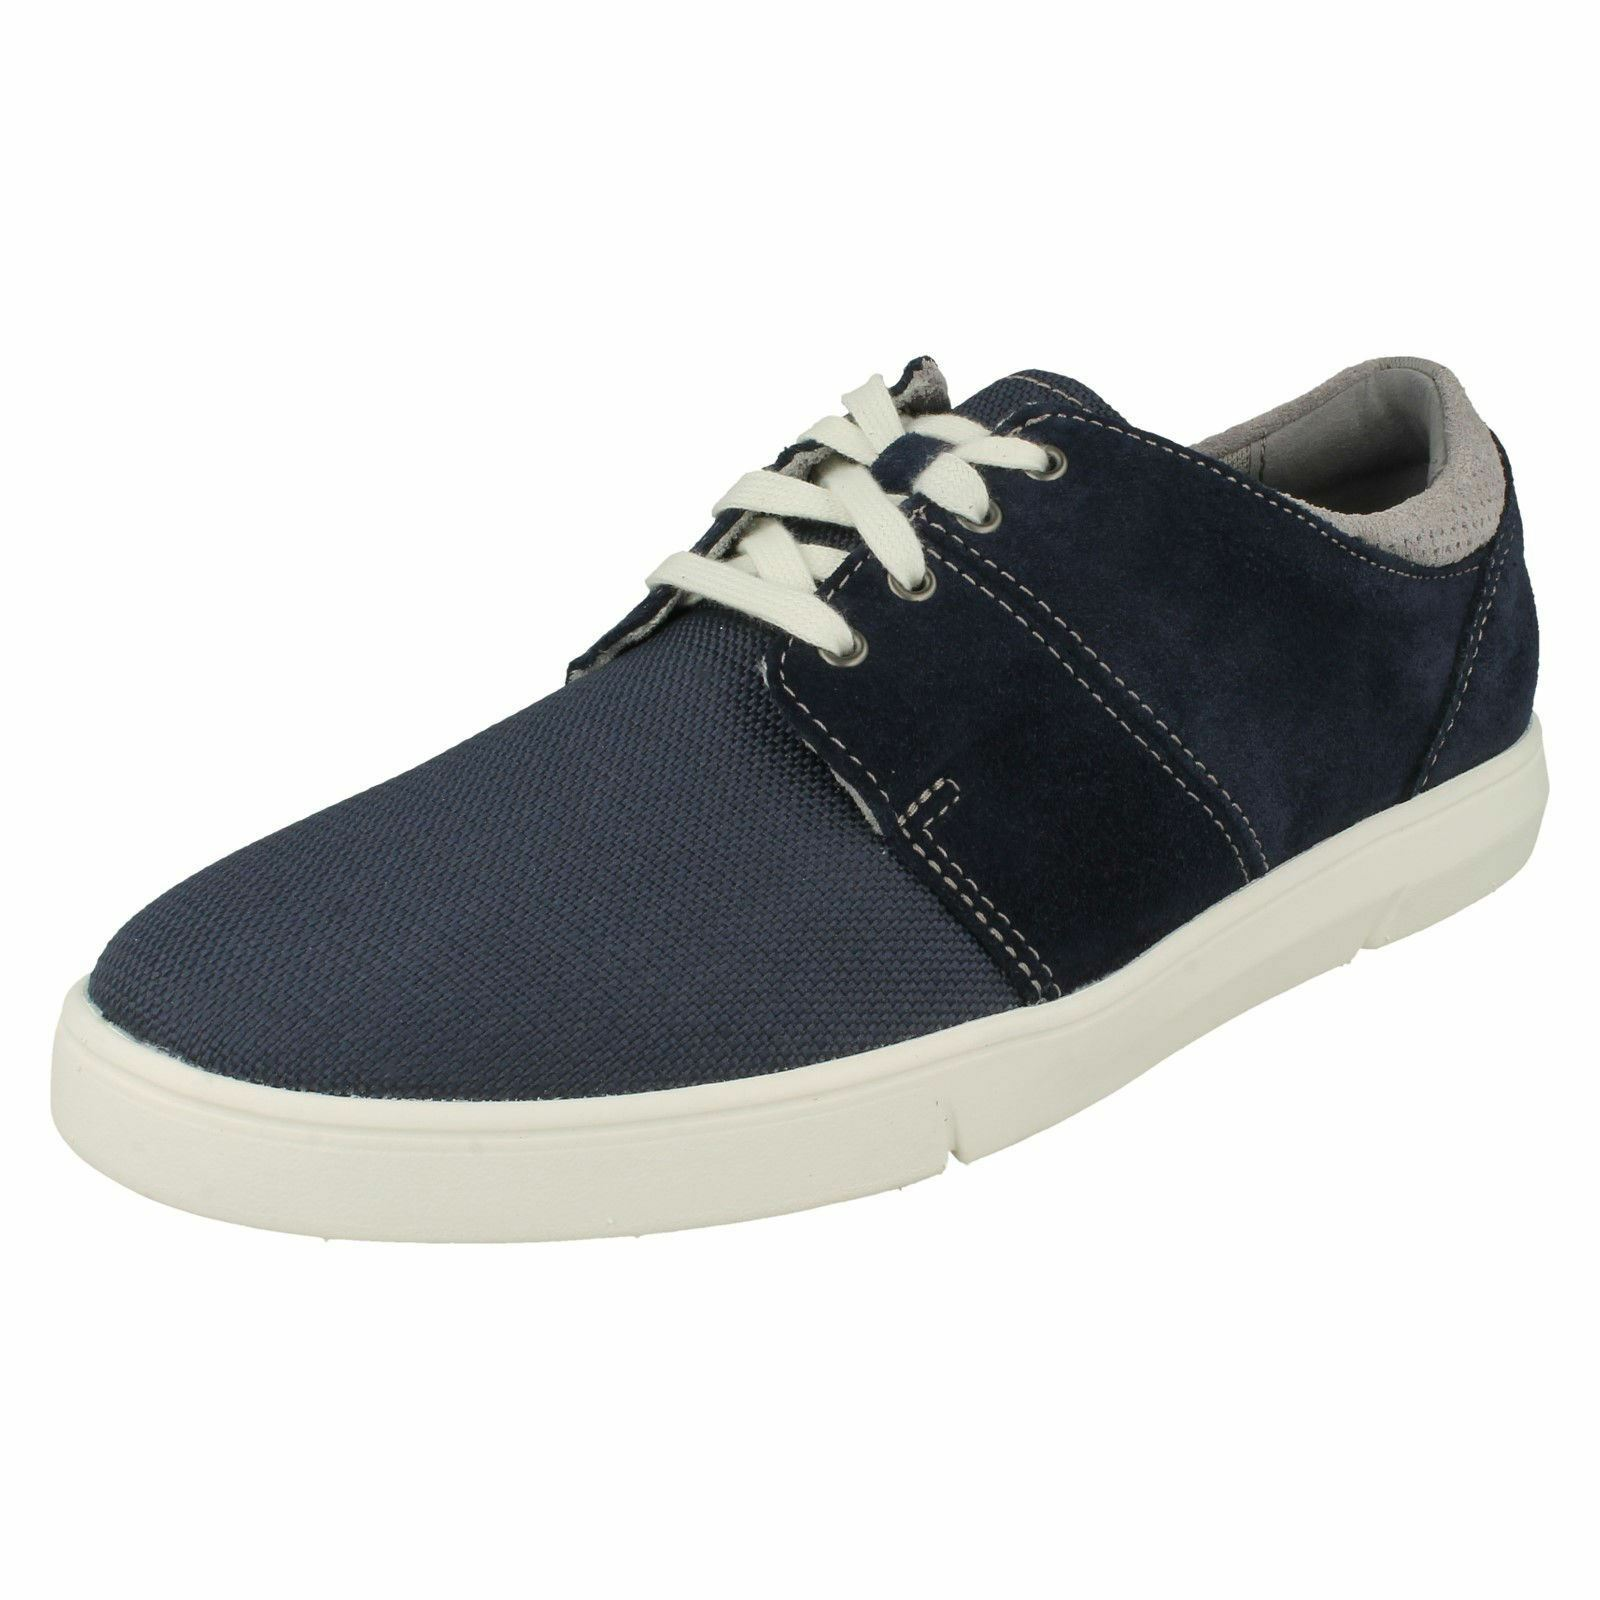 Mens Clarks Casual Lace Up schuhe Landry Edge